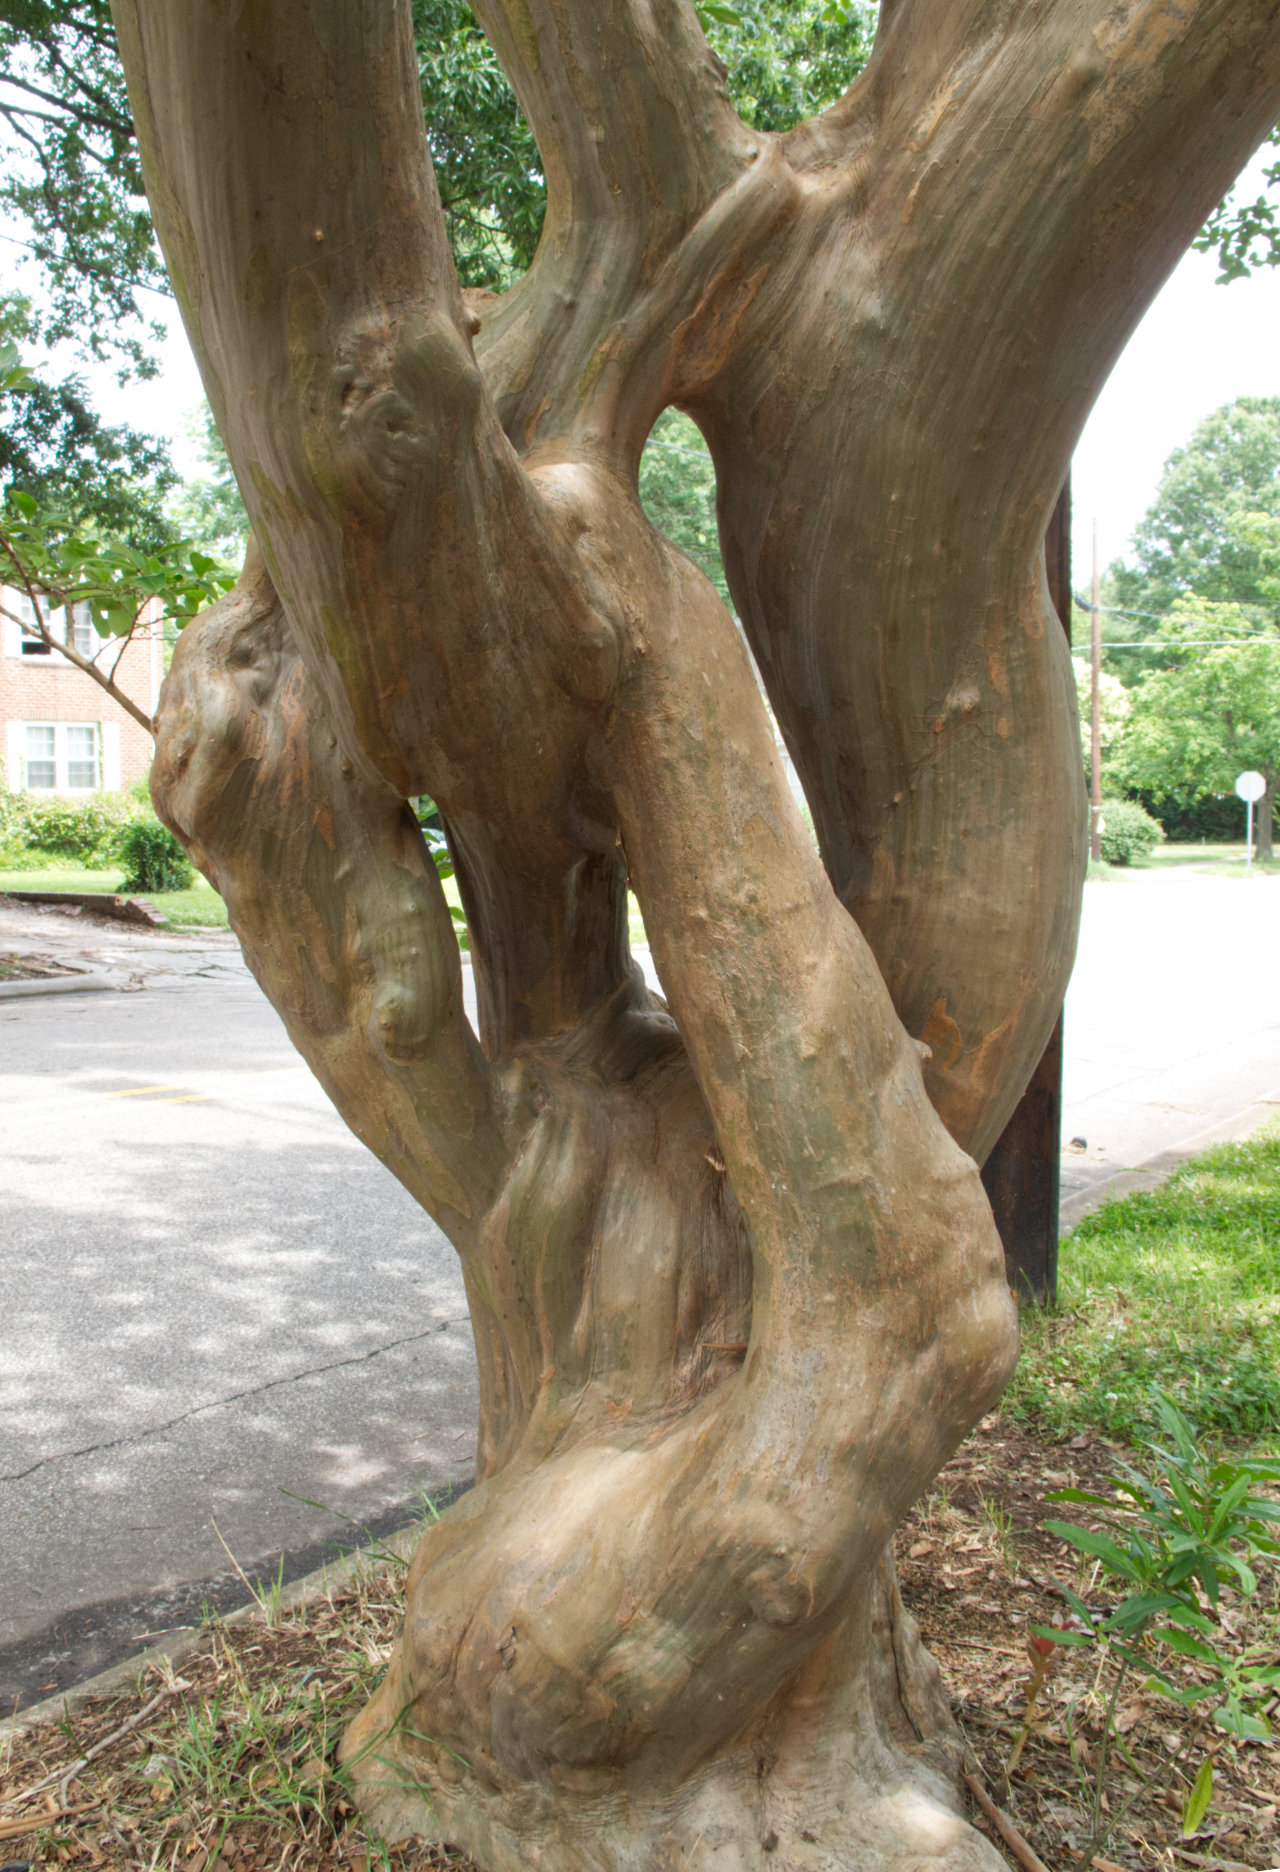 Crepe myrtle with multiple trunks that diverge and then reconverge